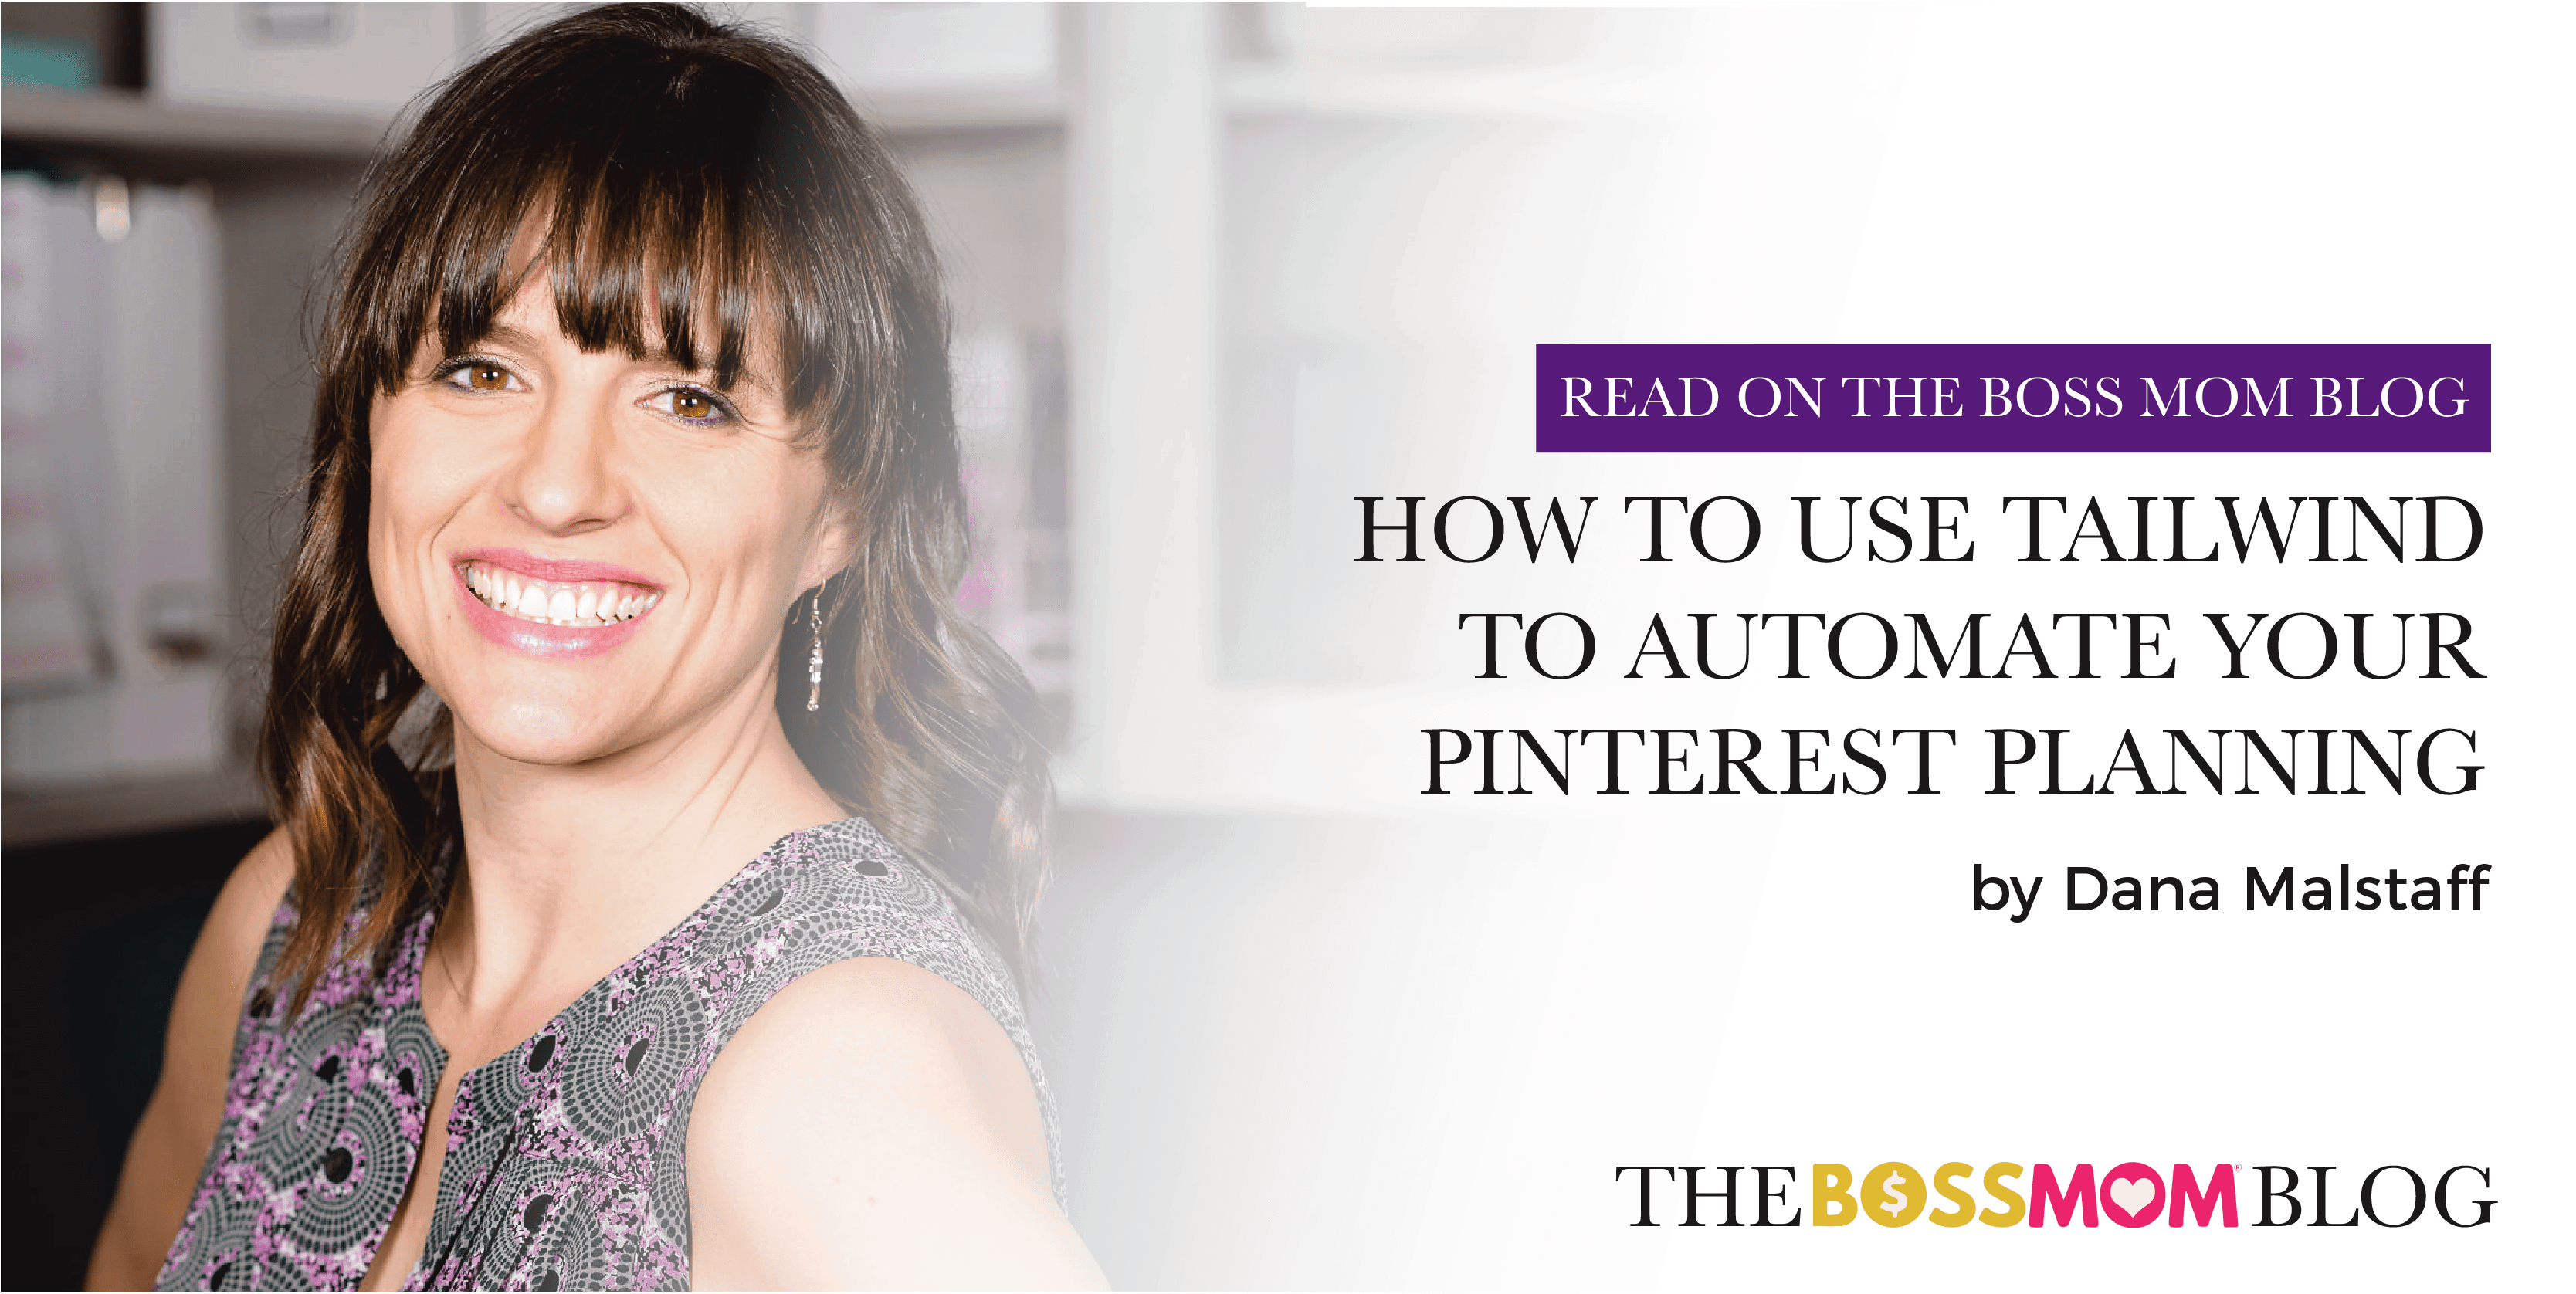 How To Use Tailwind To Automate Your Pinterest Planning